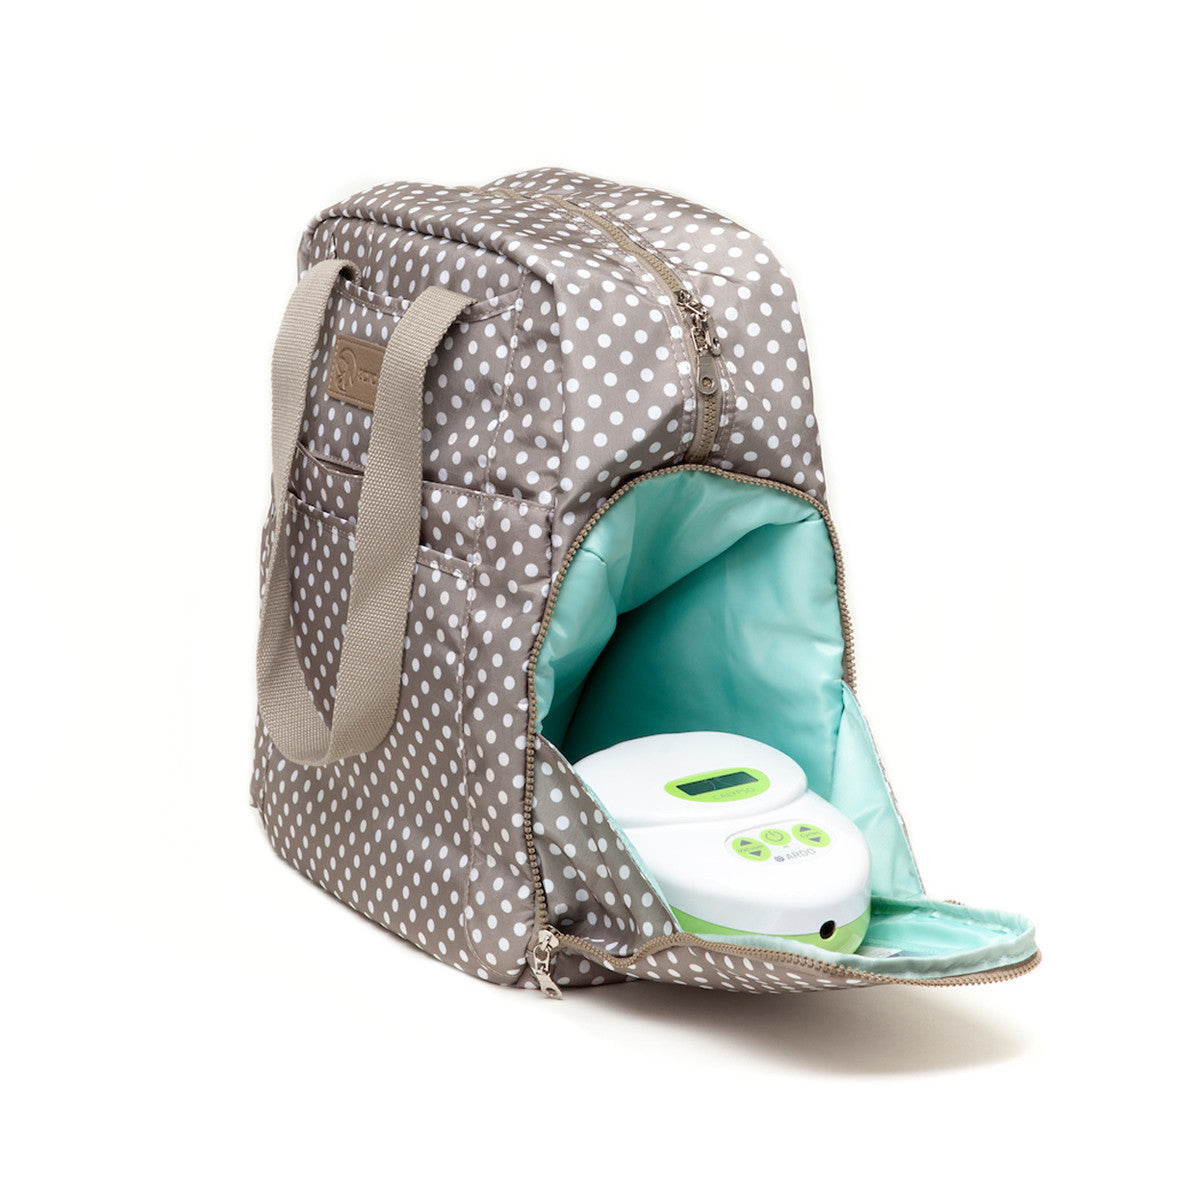 Kelly (Greige) - Breast Pump Bags and Pumping Accessories from Sarah Wells Bags